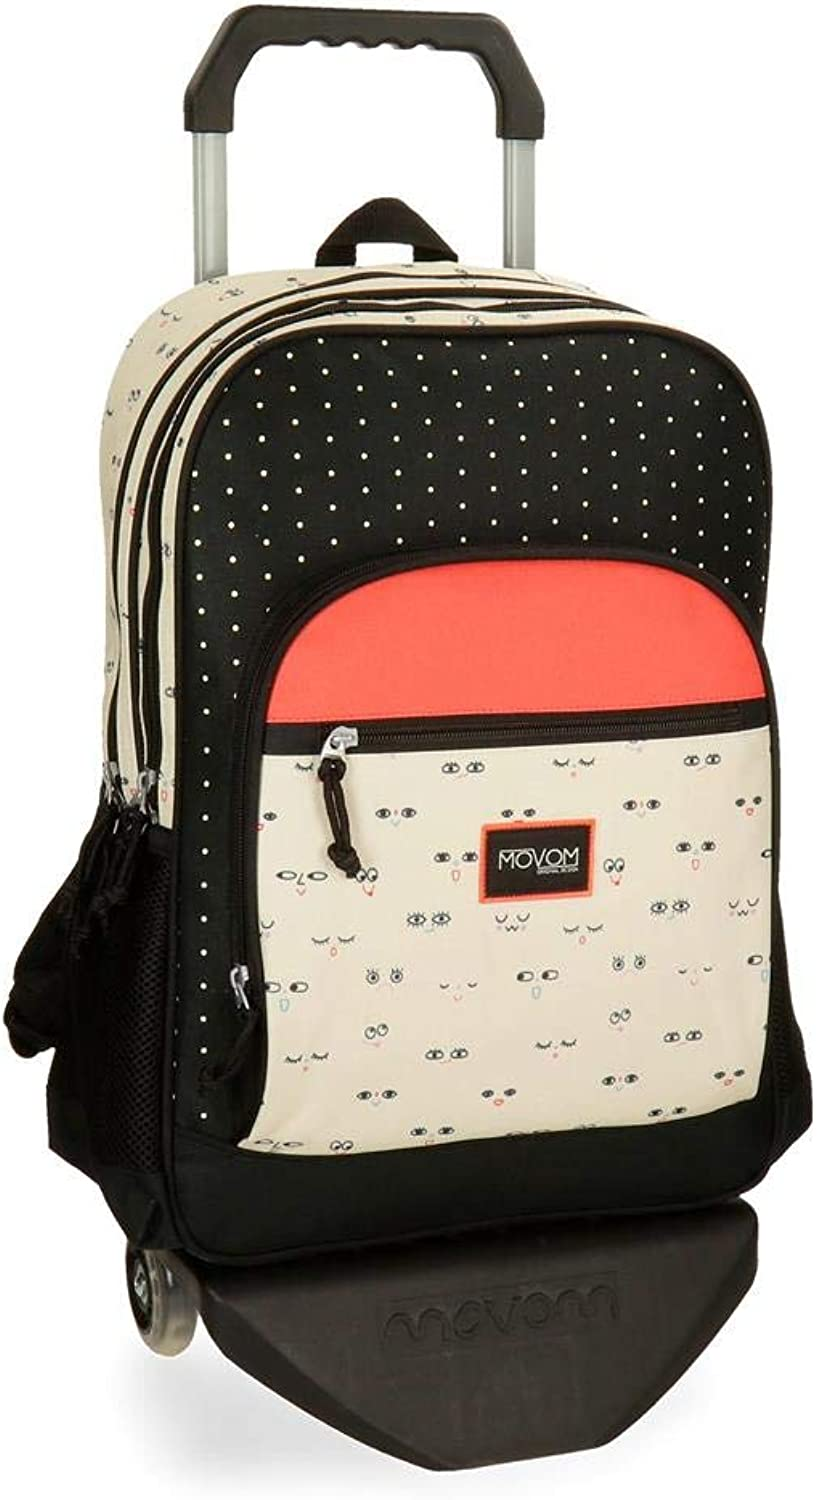 Movom Wink School Backpack, 45 cm, 21.6 liters, Multicolour (Multicolor)